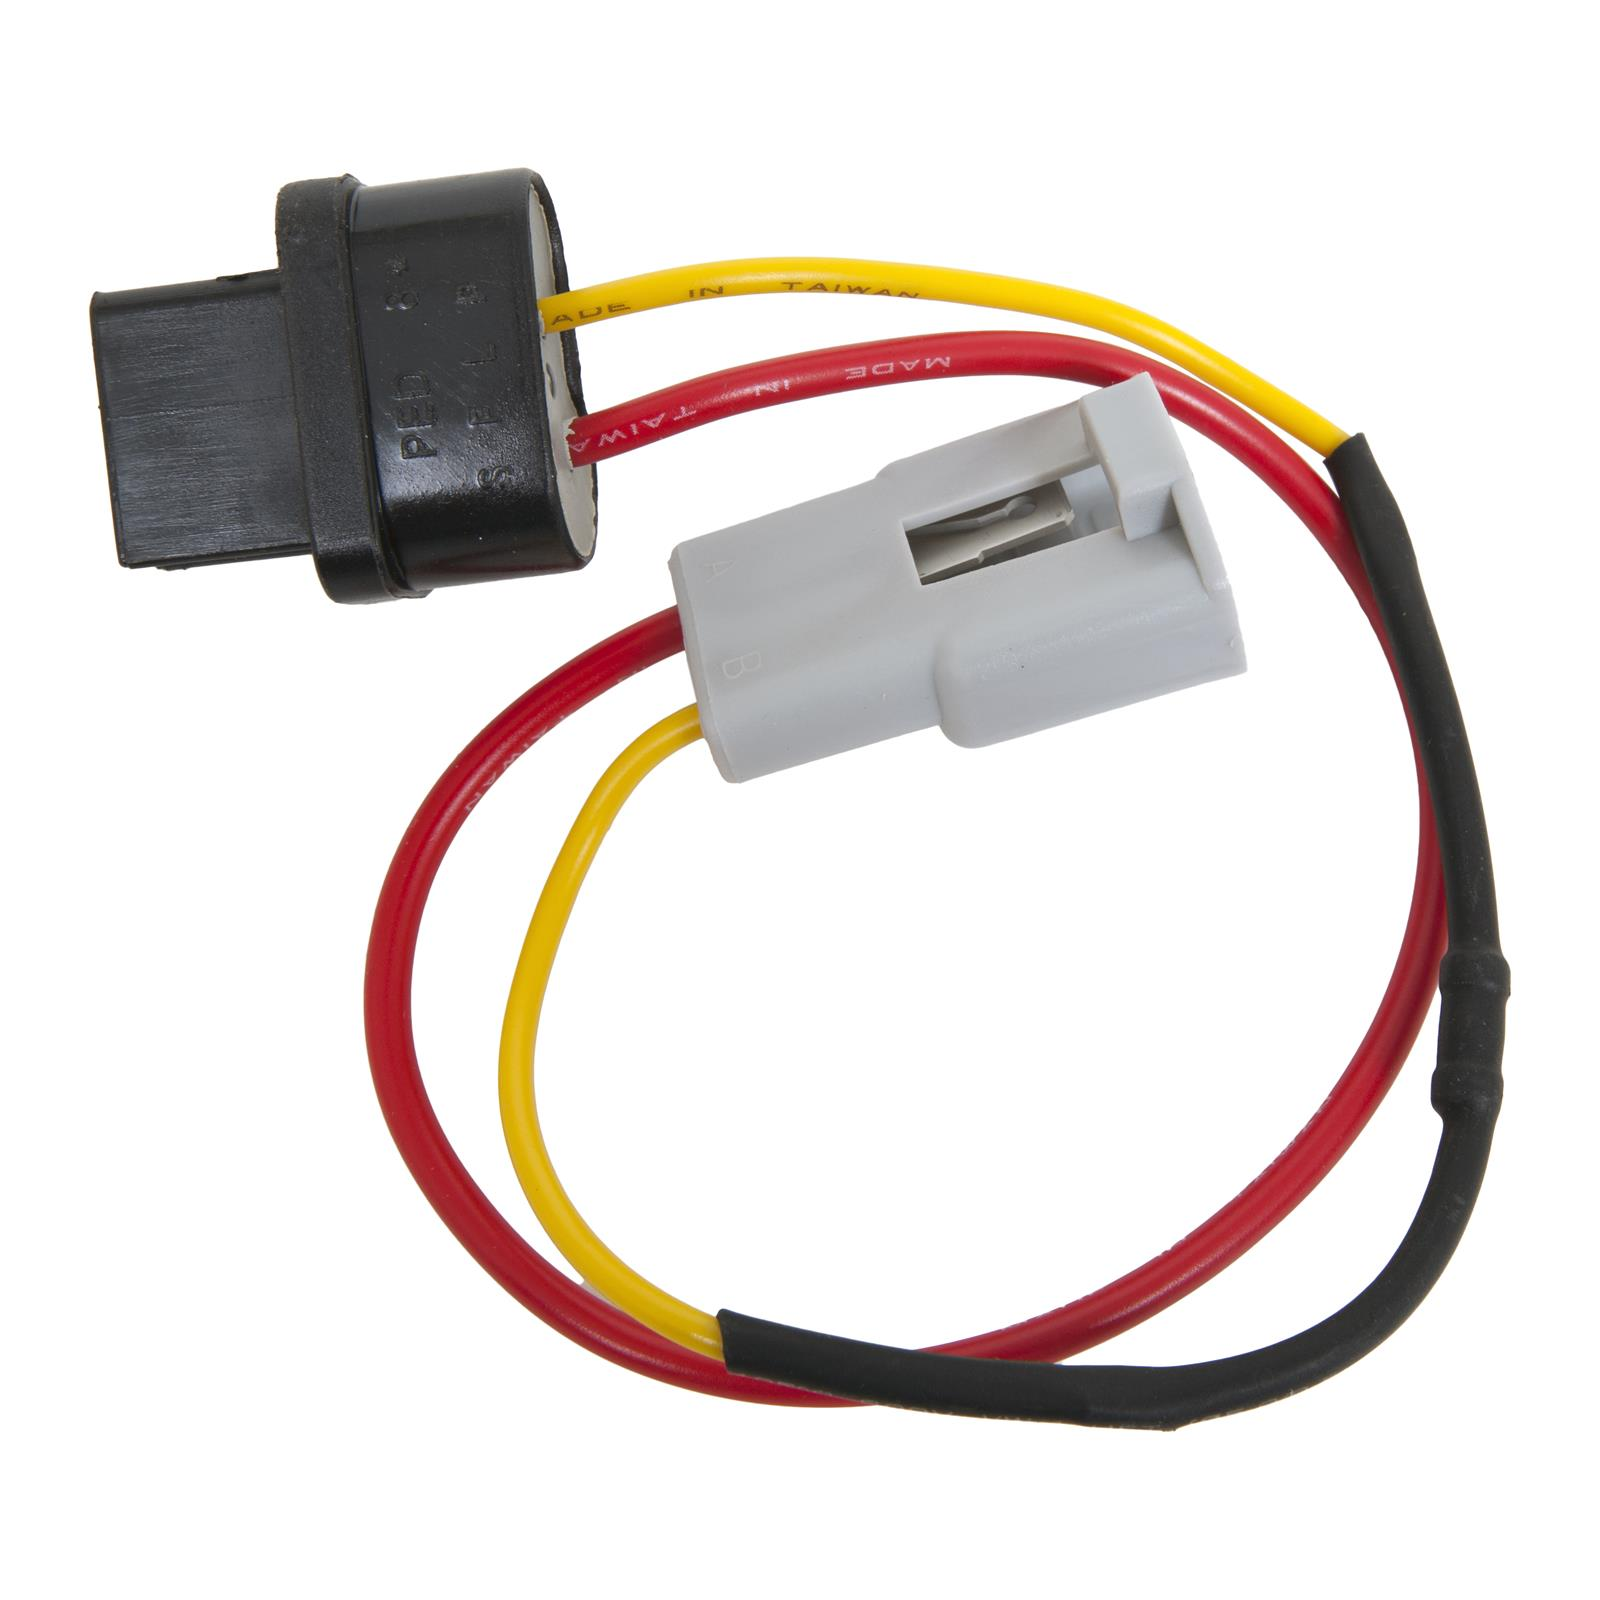 ado pt2145_xl acdelco replacement wiring harness connectors pt2145 free automotive wiring harness connectors at aneh.co